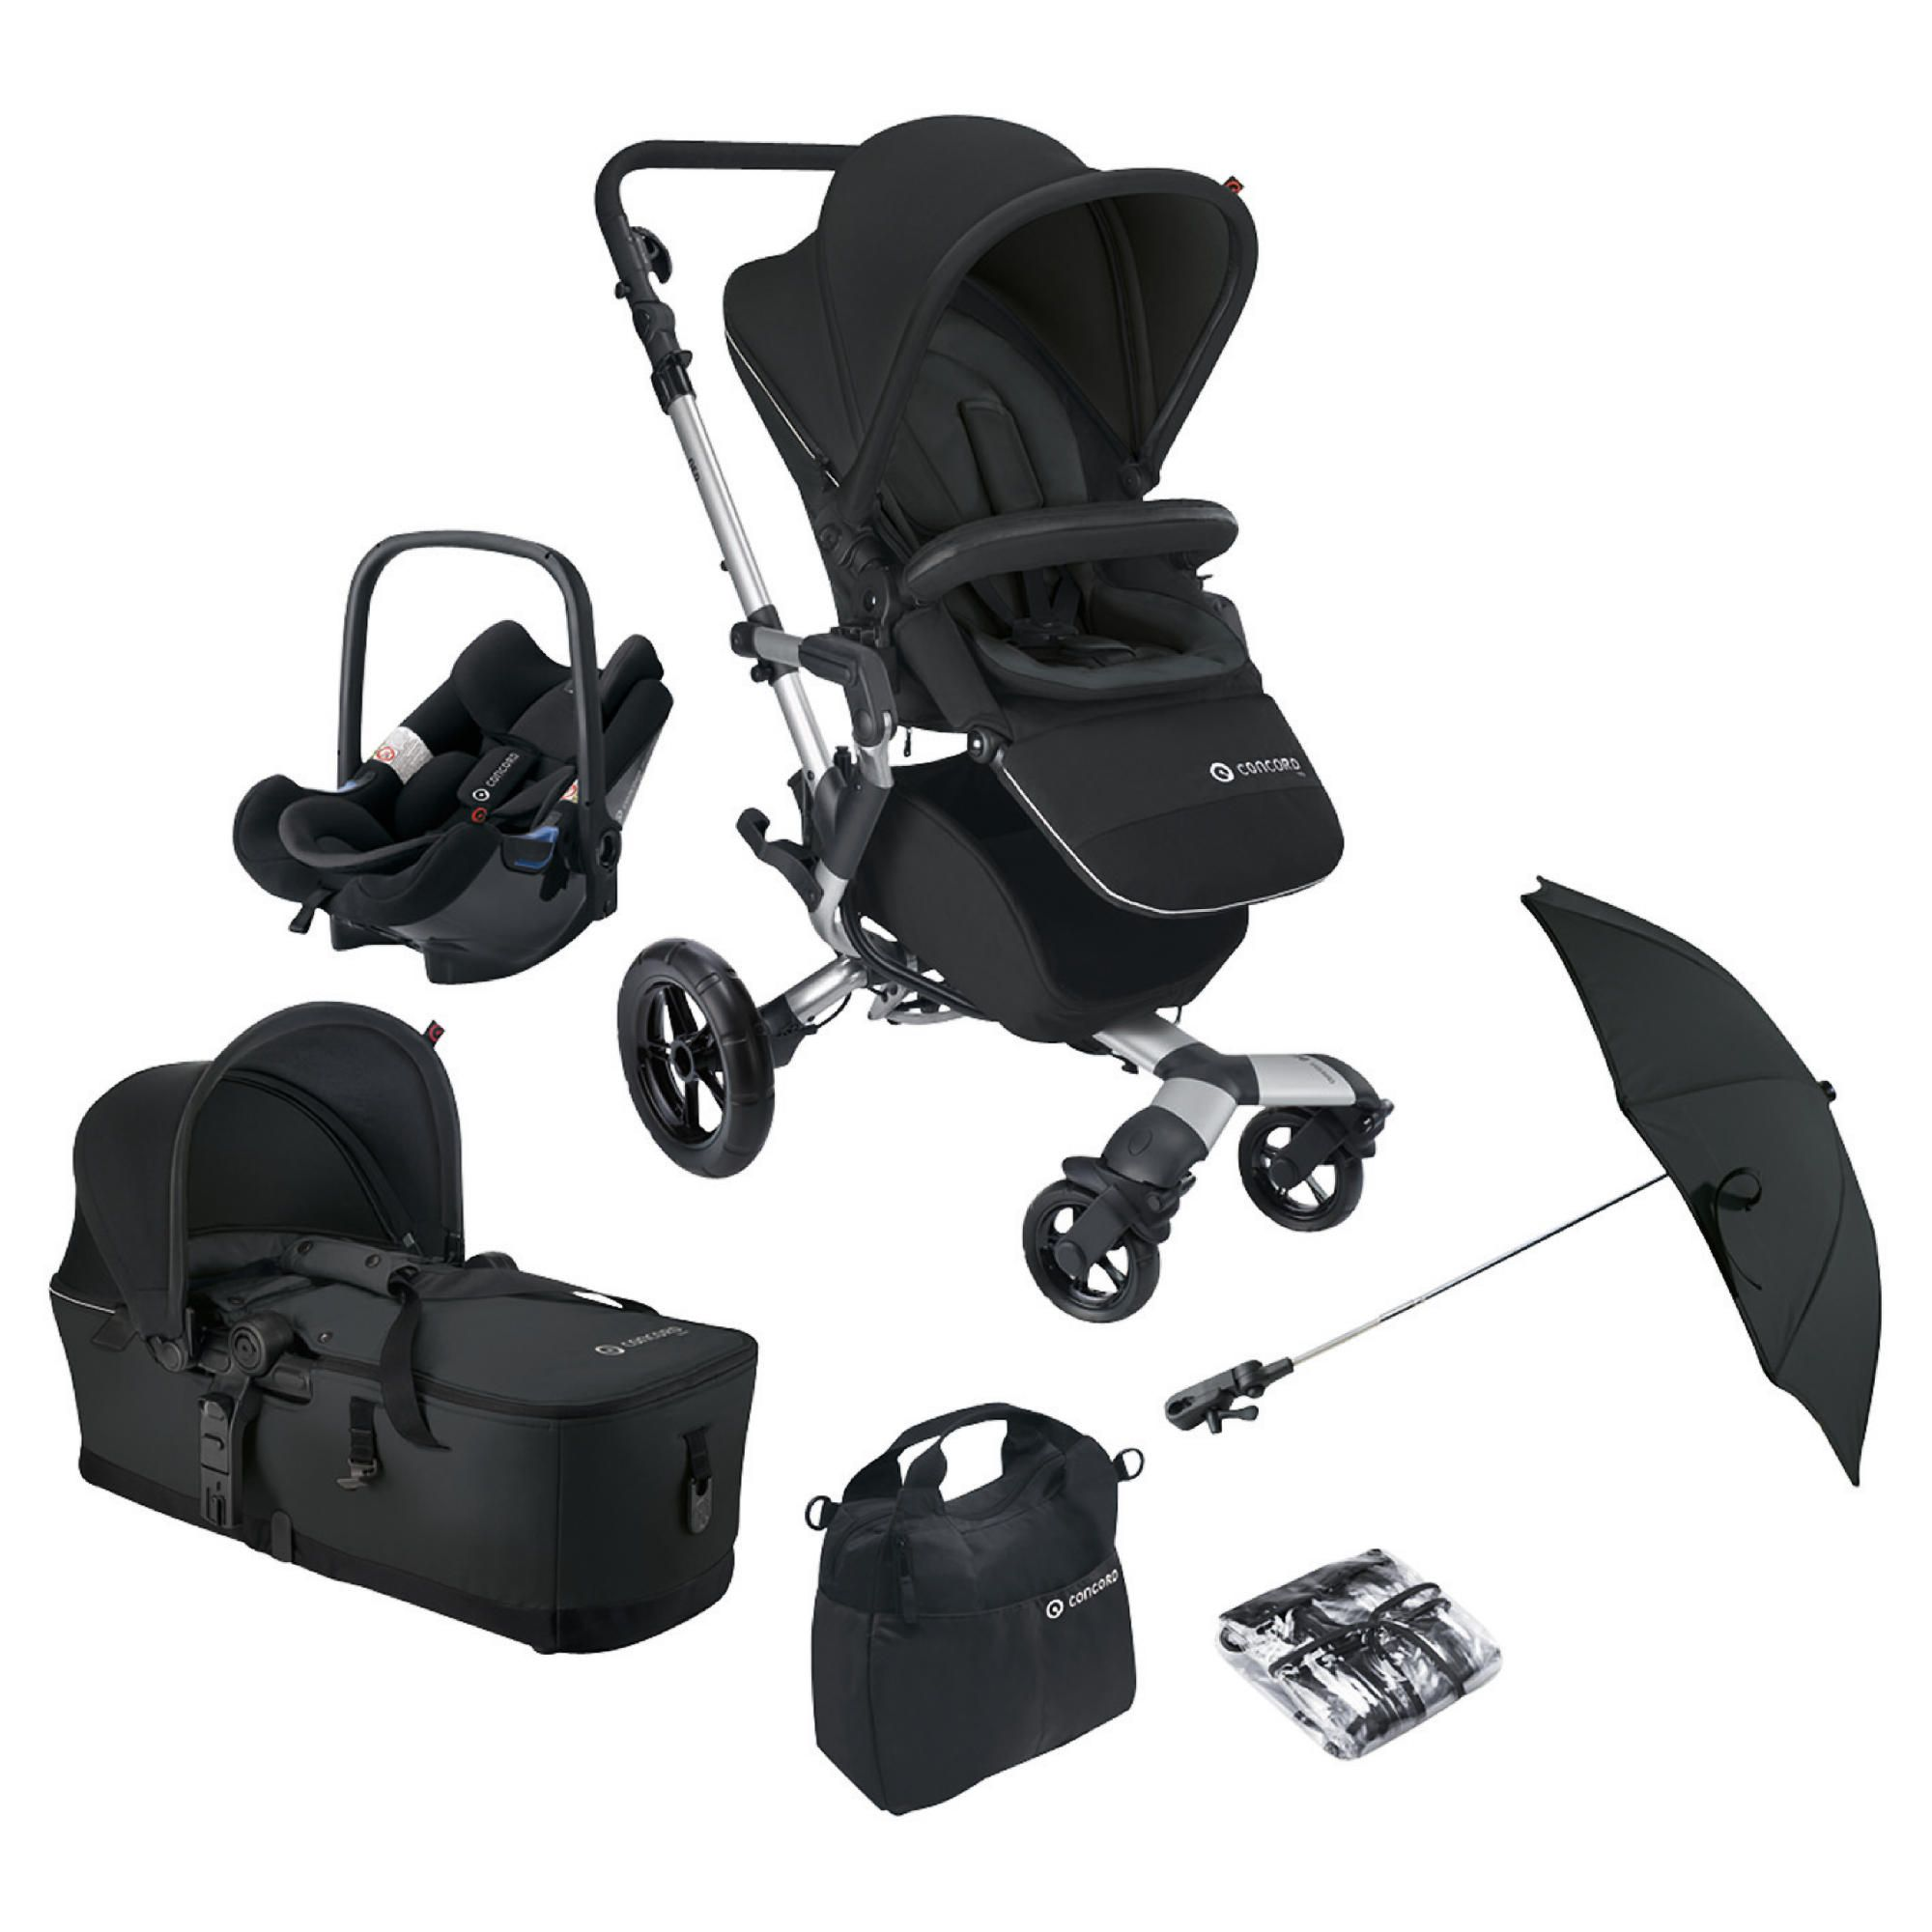 Concord Travel System Neo Mobility Set, Dark Knight at Tesco Direct